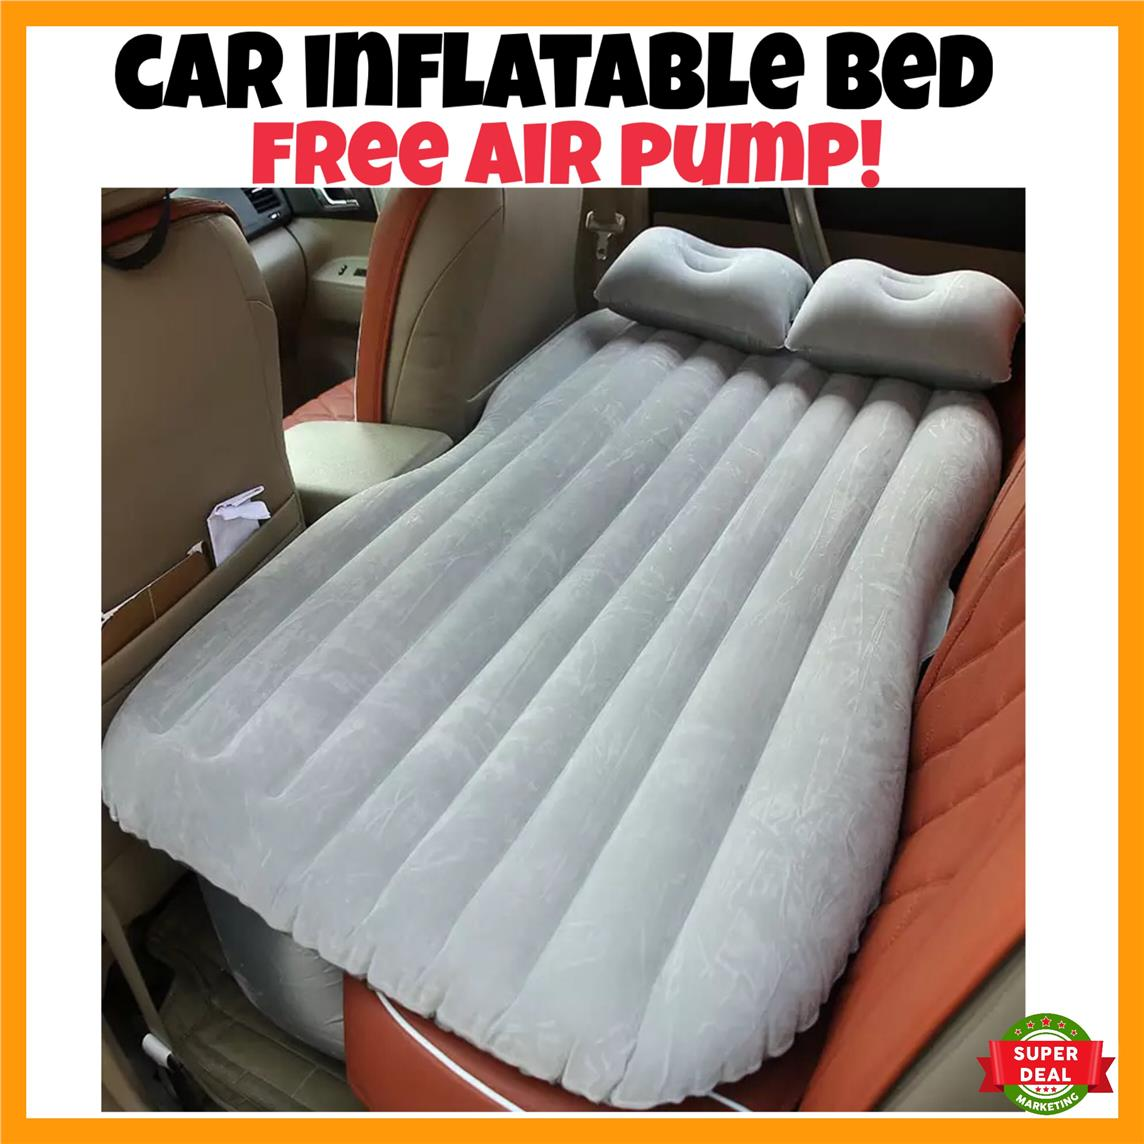 Baby bed camping - Inflatable Car Back Seat Air Bed Travel Camping Sleep Baby Kids Bed